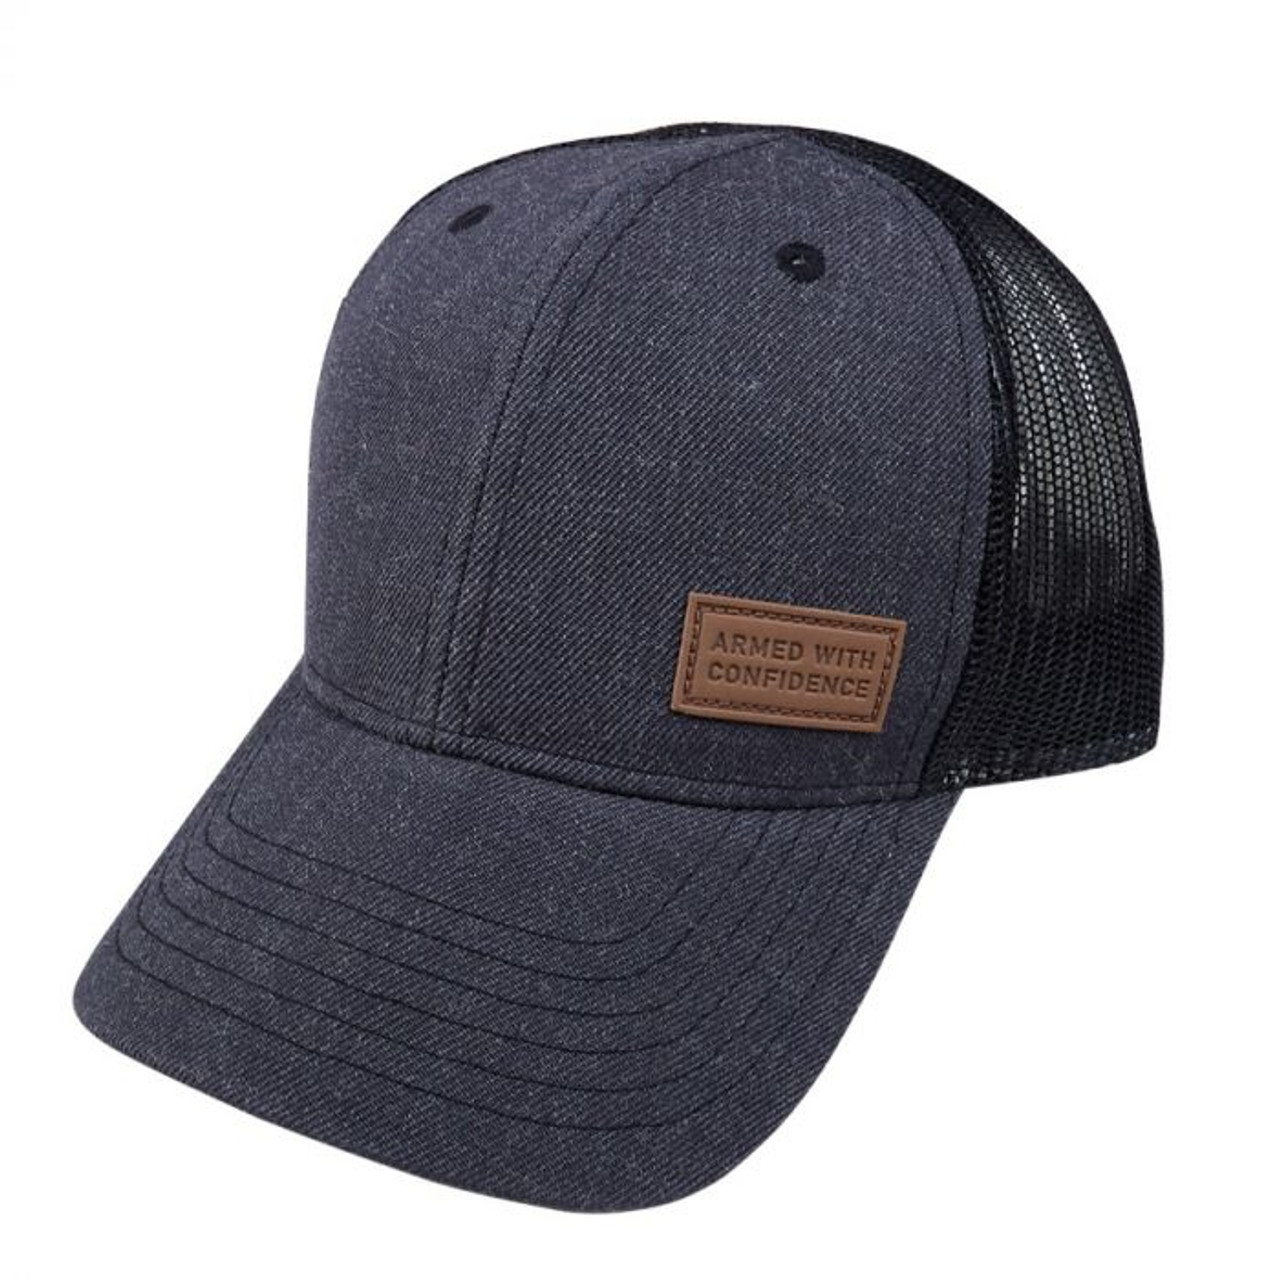 Glock Armed With Confidence Hat